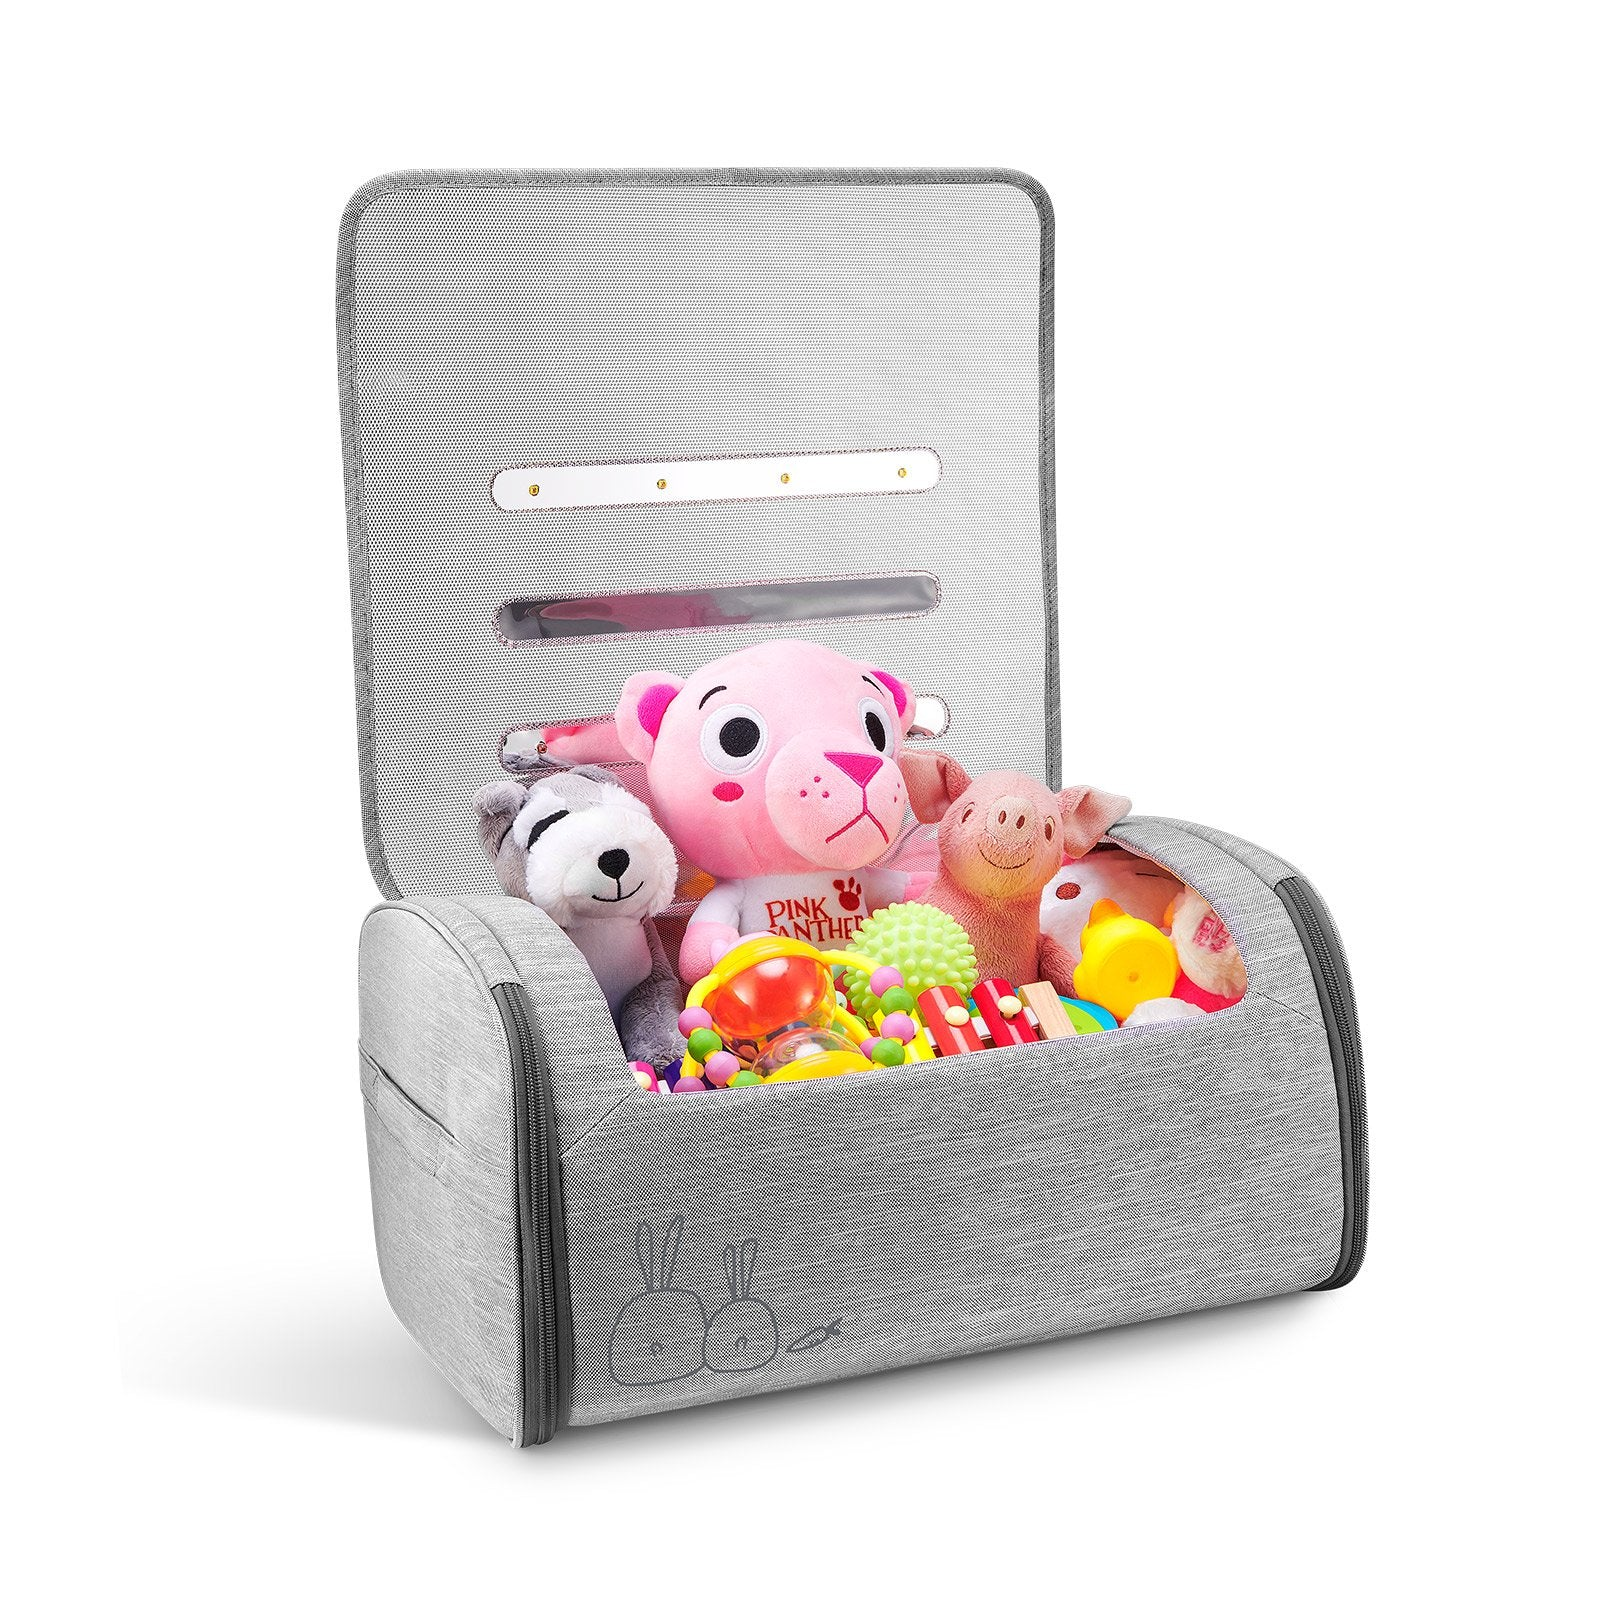 Sterilizing Storage Bag for Baby Toys & Clothes